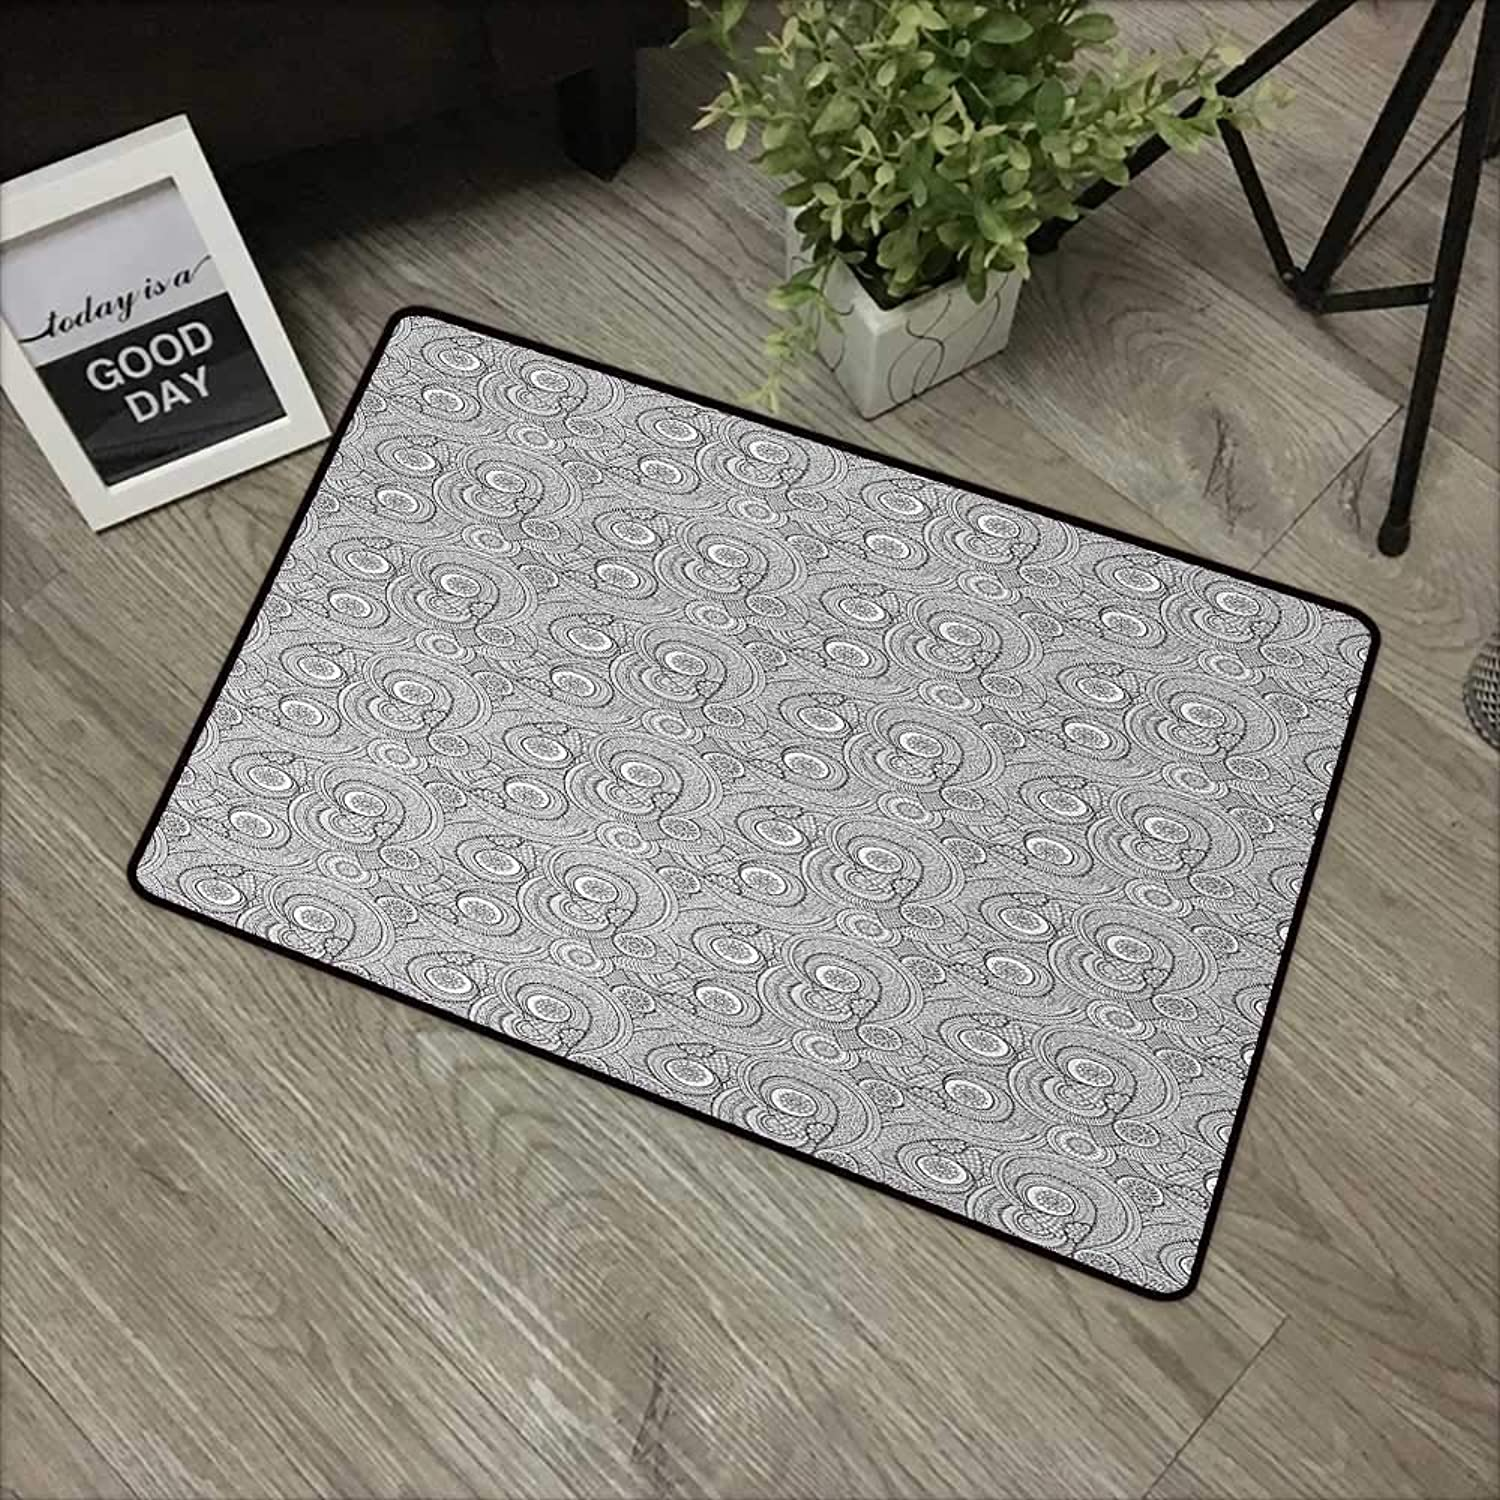 Door mat W35 x L59 INCH Black and White,Asian Ethnic Floral Pattern with Swirls and Mandala Inspired Henna Motifs,Black White with Non-Slip Backing Door Mat Carpet